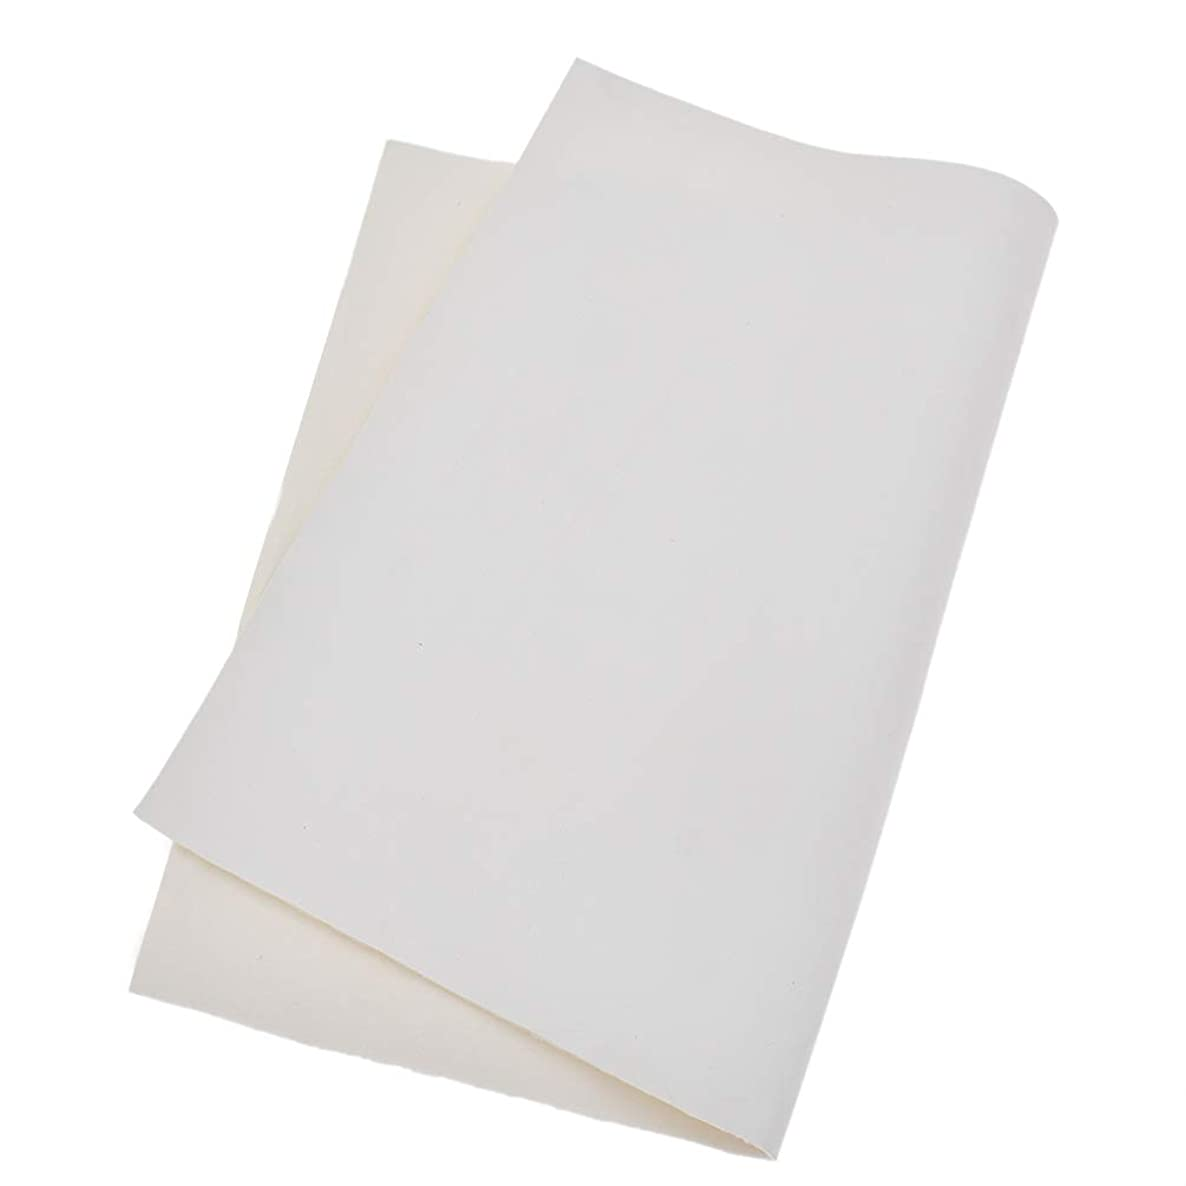 Kesheng A4 Solid Color PU Leather Sheets Fabric for Making Bags Crafts DIY Sewing 11.4 x 8.26 Inch